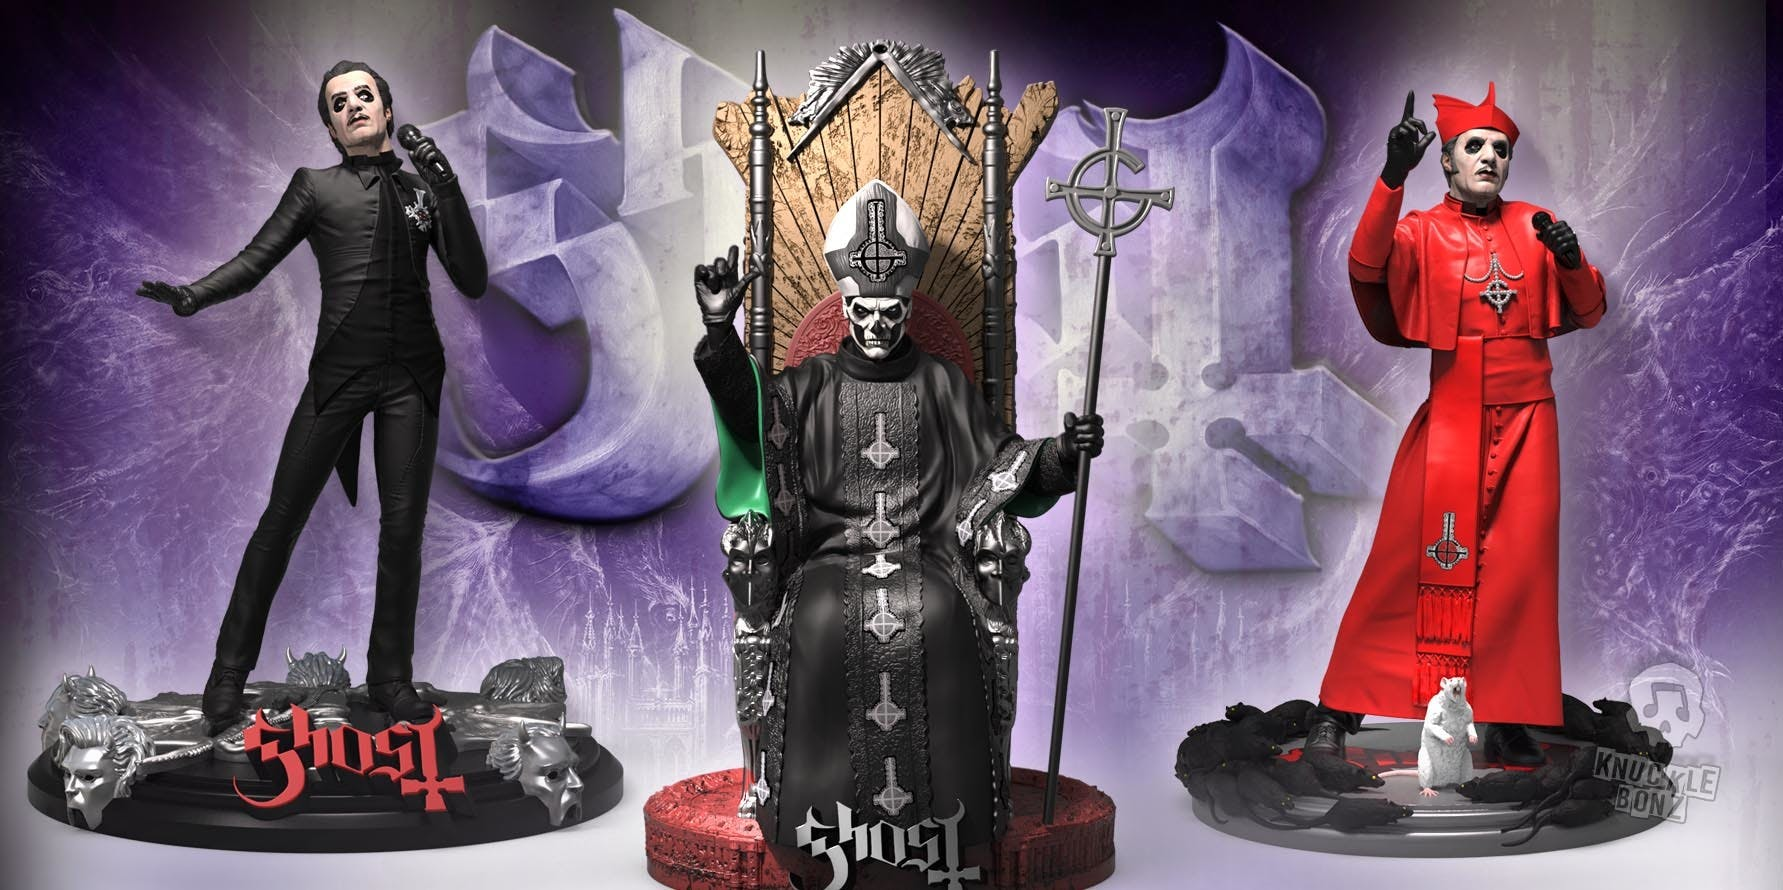 Can You Afford These New Ghost Action Figures?